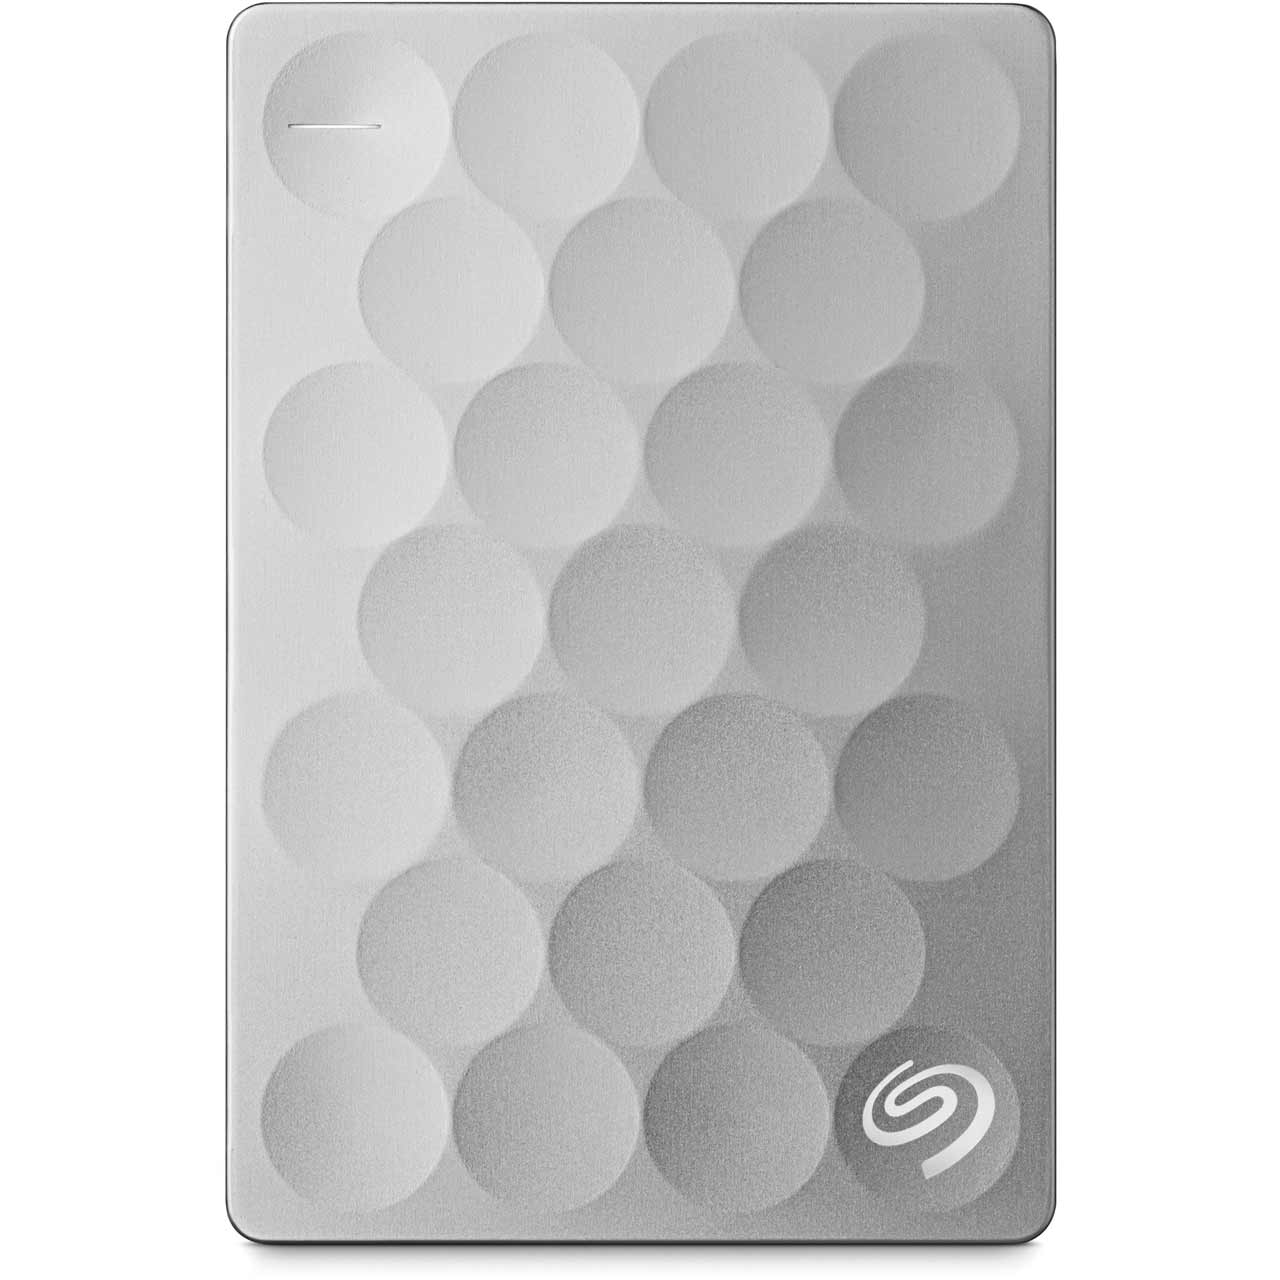 Original Seagate Back Up Plus Ultra Slim 2TB External Hard Drive (STEH2000200)